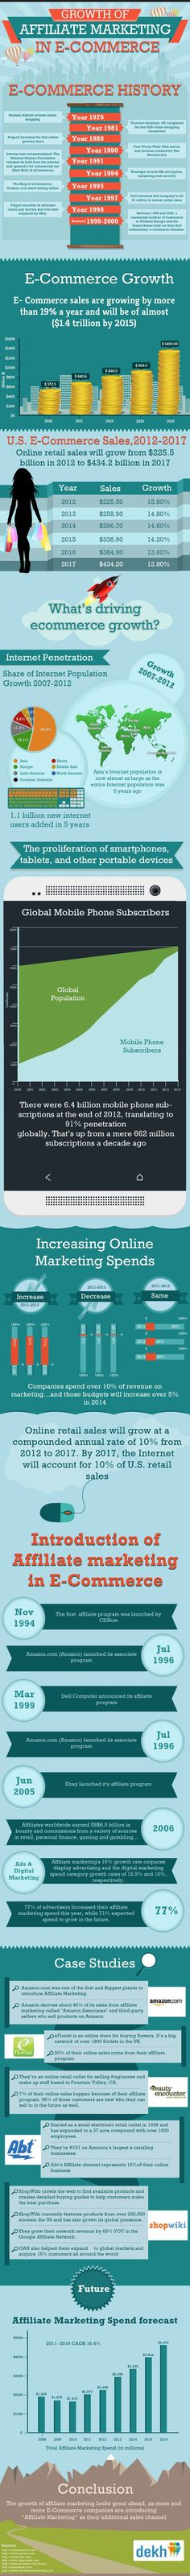 Growth Of Affiliate Marketing In E-Commerce #Infographic #marketing #Ecommerce: